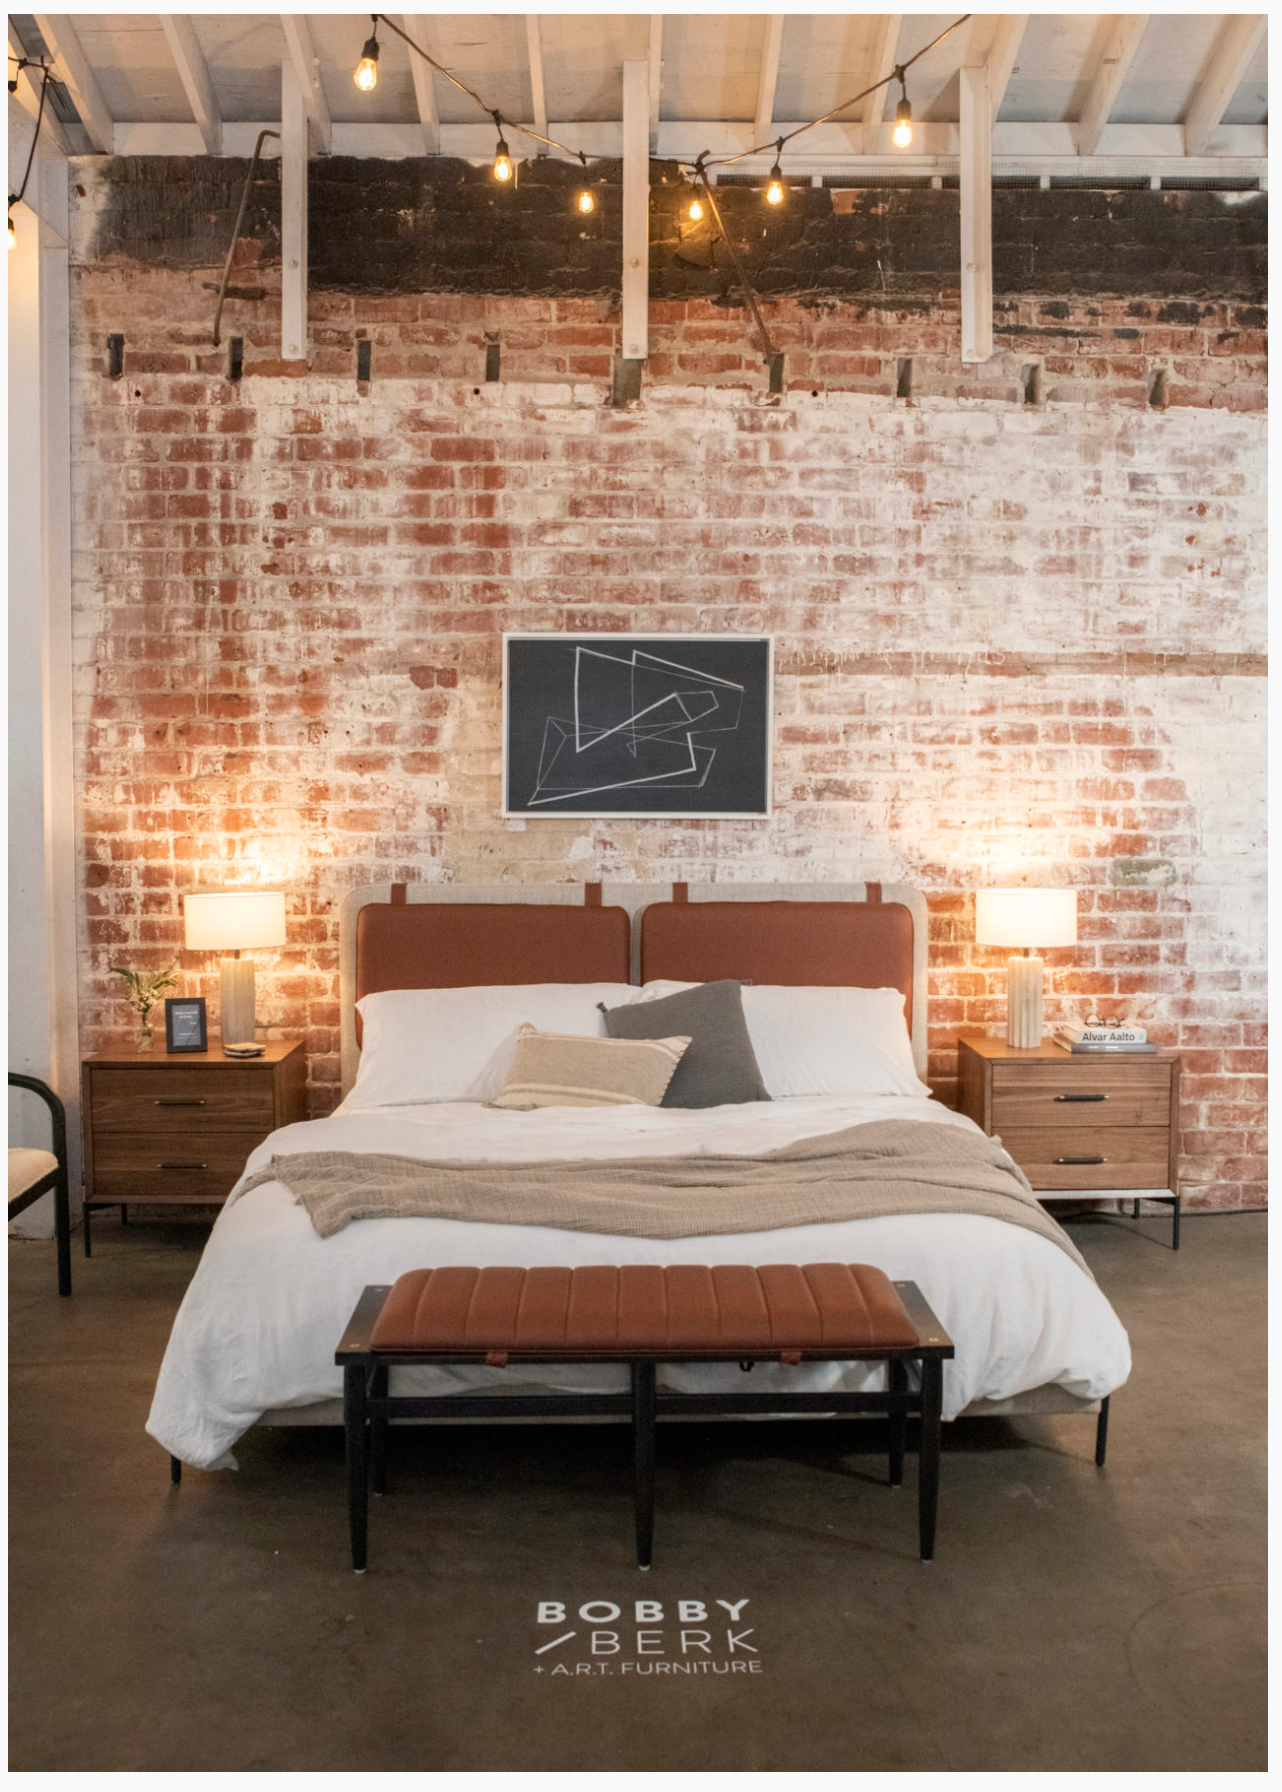 A modern bed in front of a red brick wall